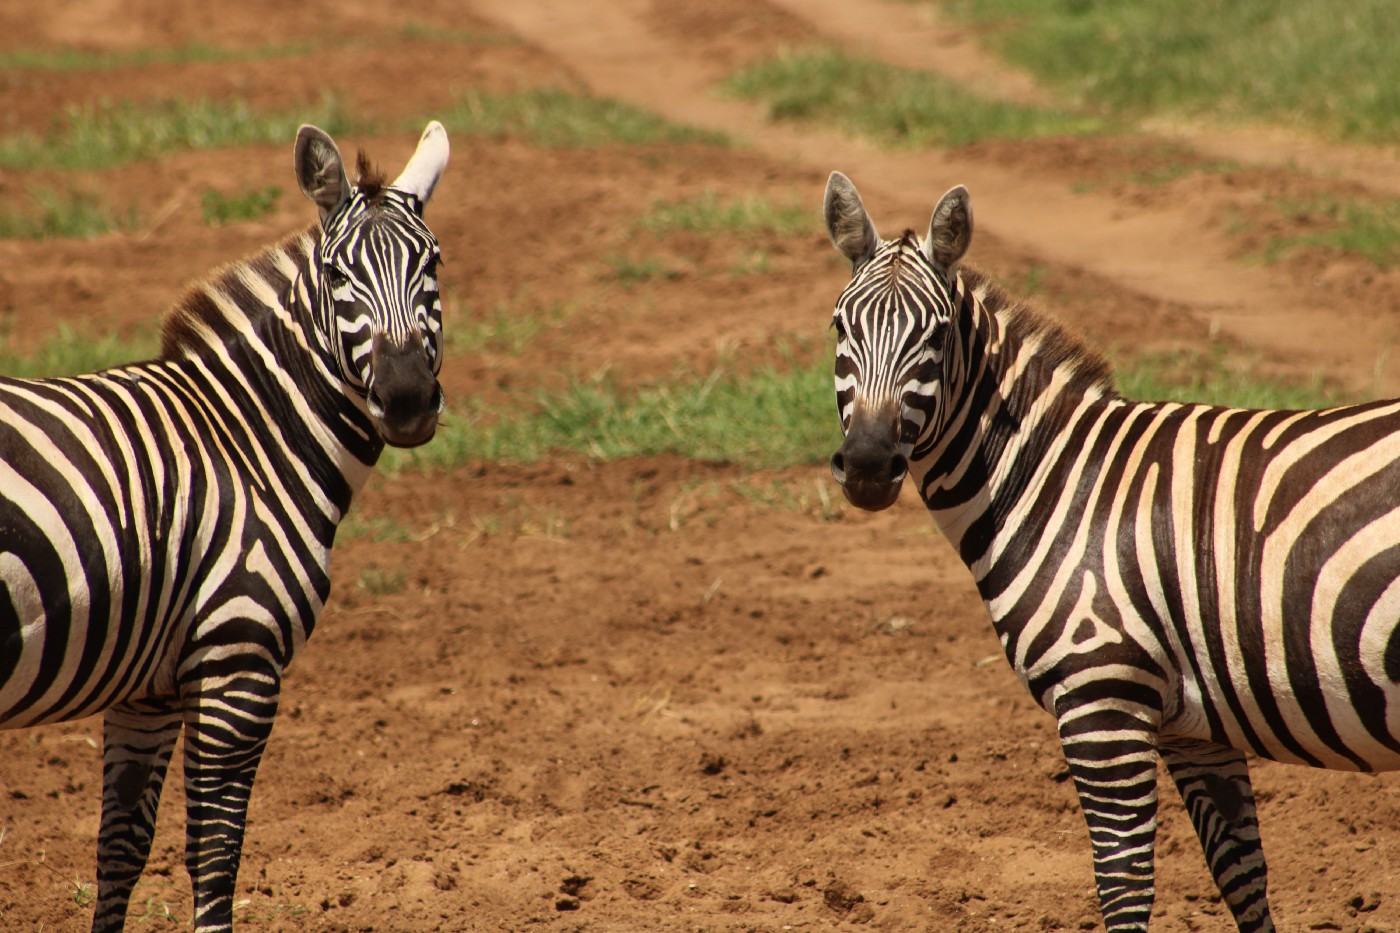 Two zebras with noticably differnet stripe patterns looking straight at the camera, one on each side of the frame.